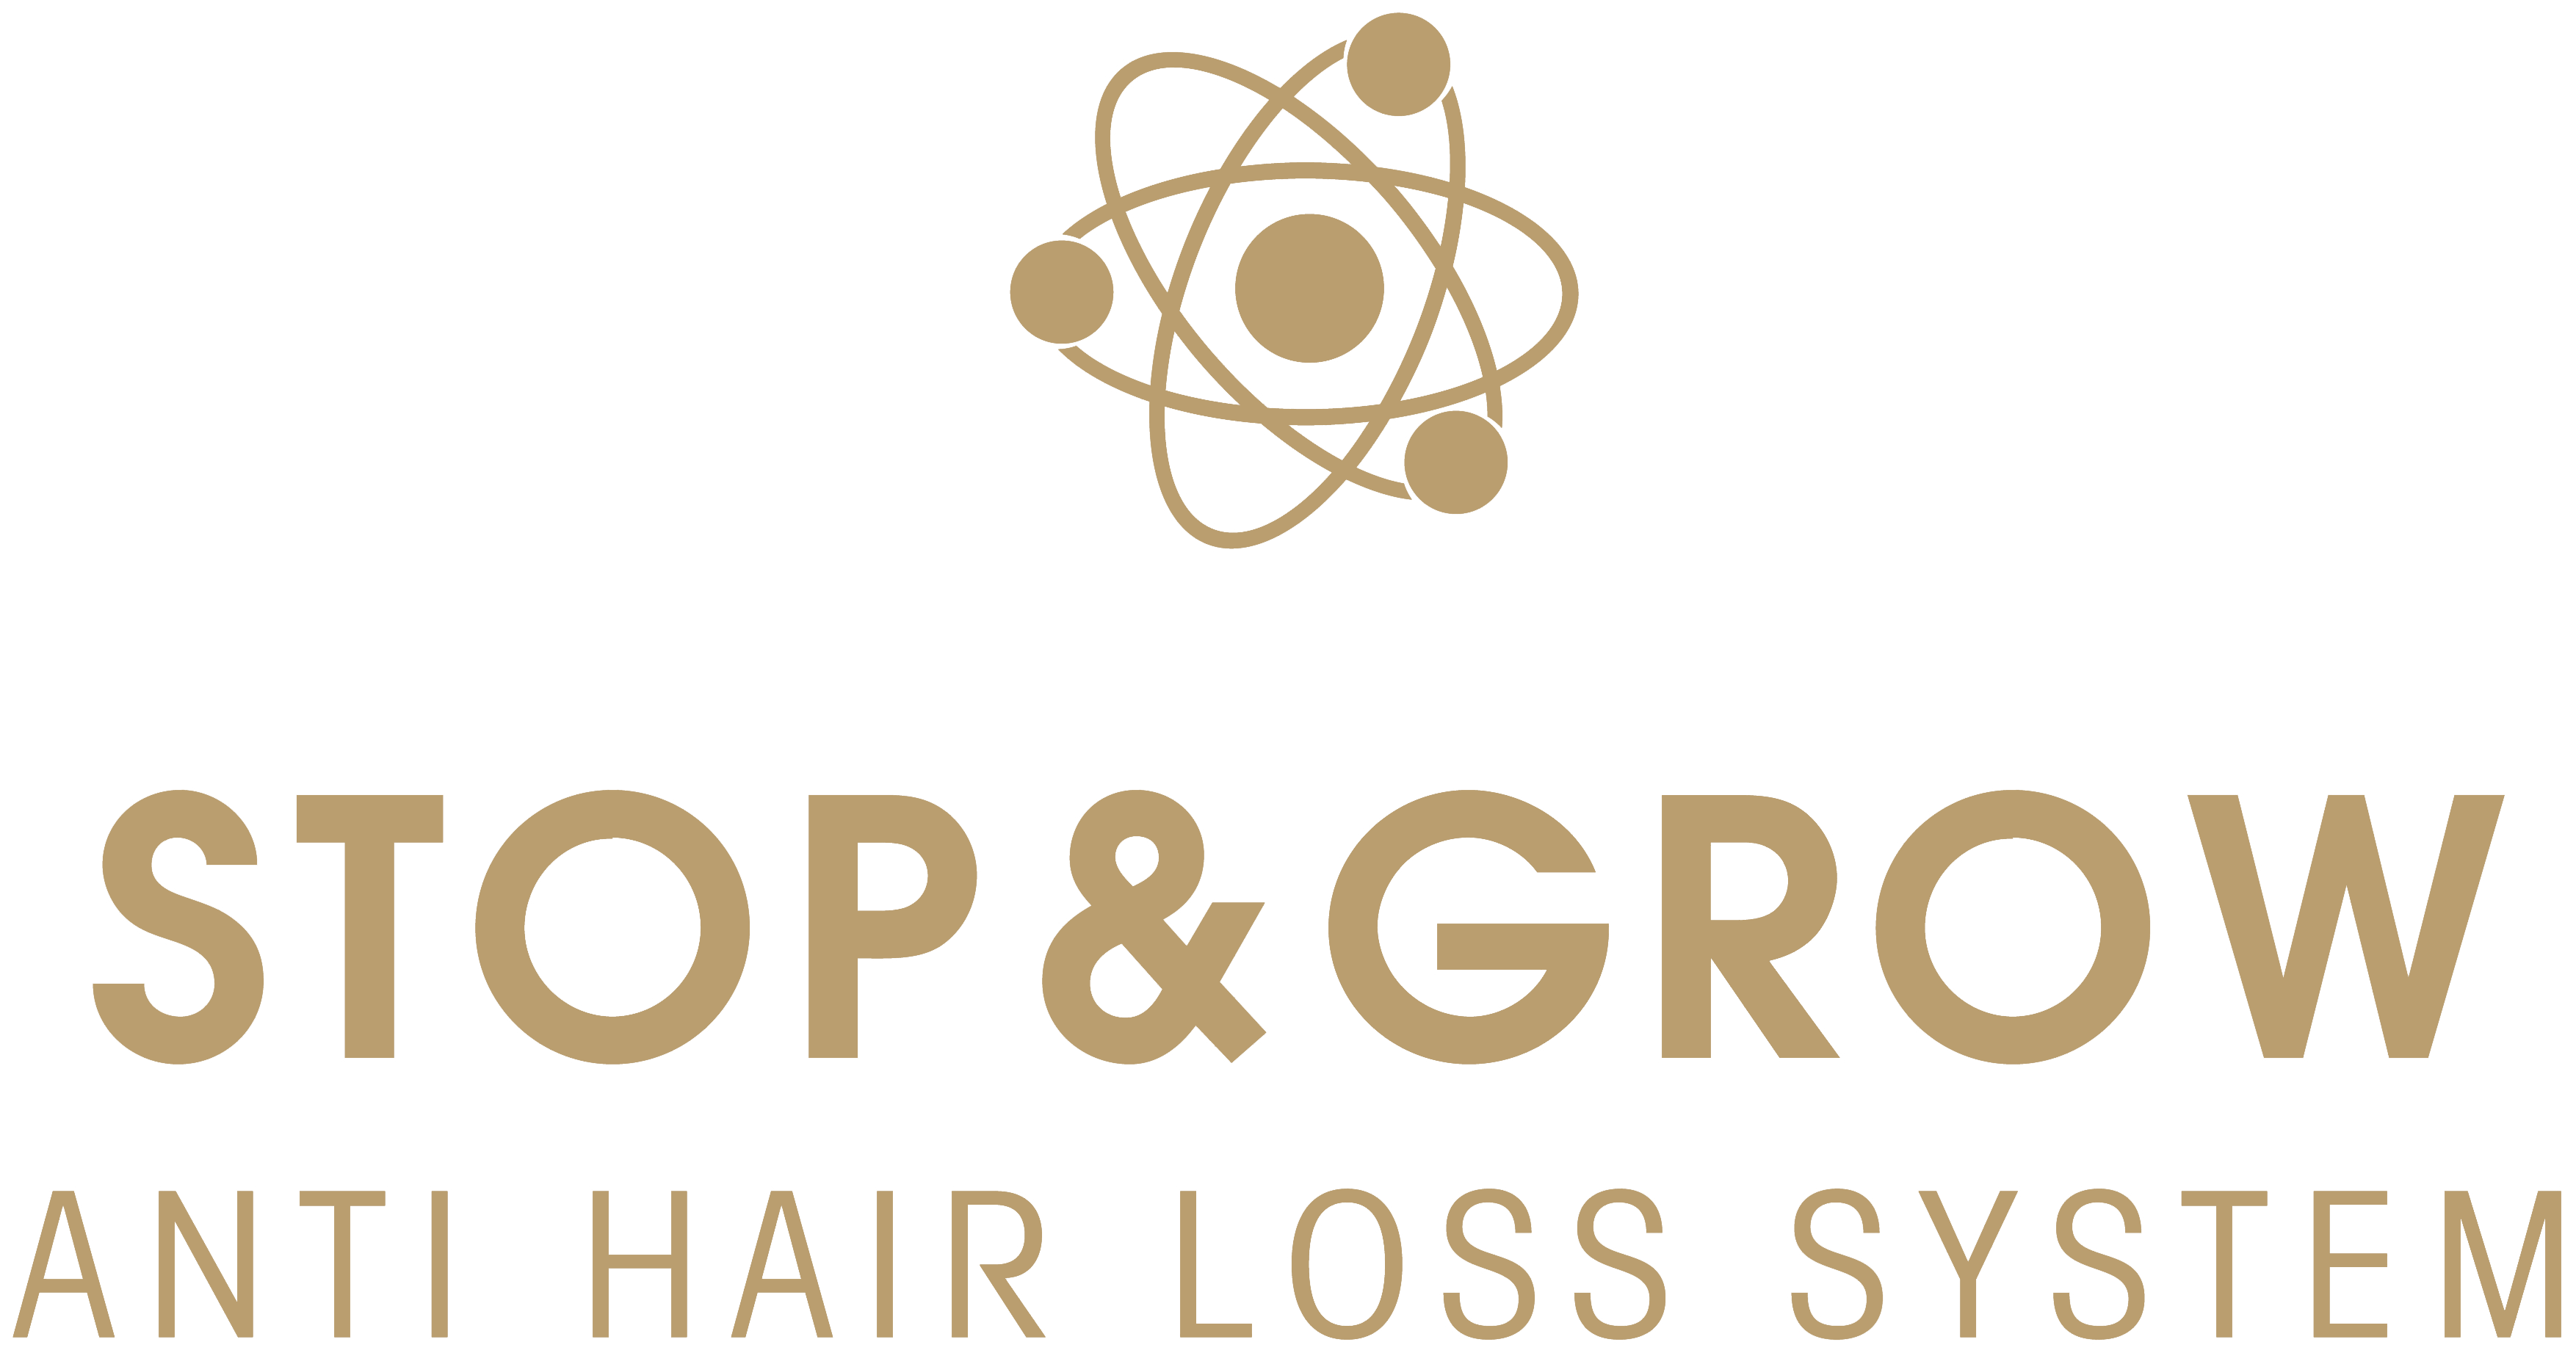 HAIRDREAMS - StopandGrow_Anti-Hair-Loss-System